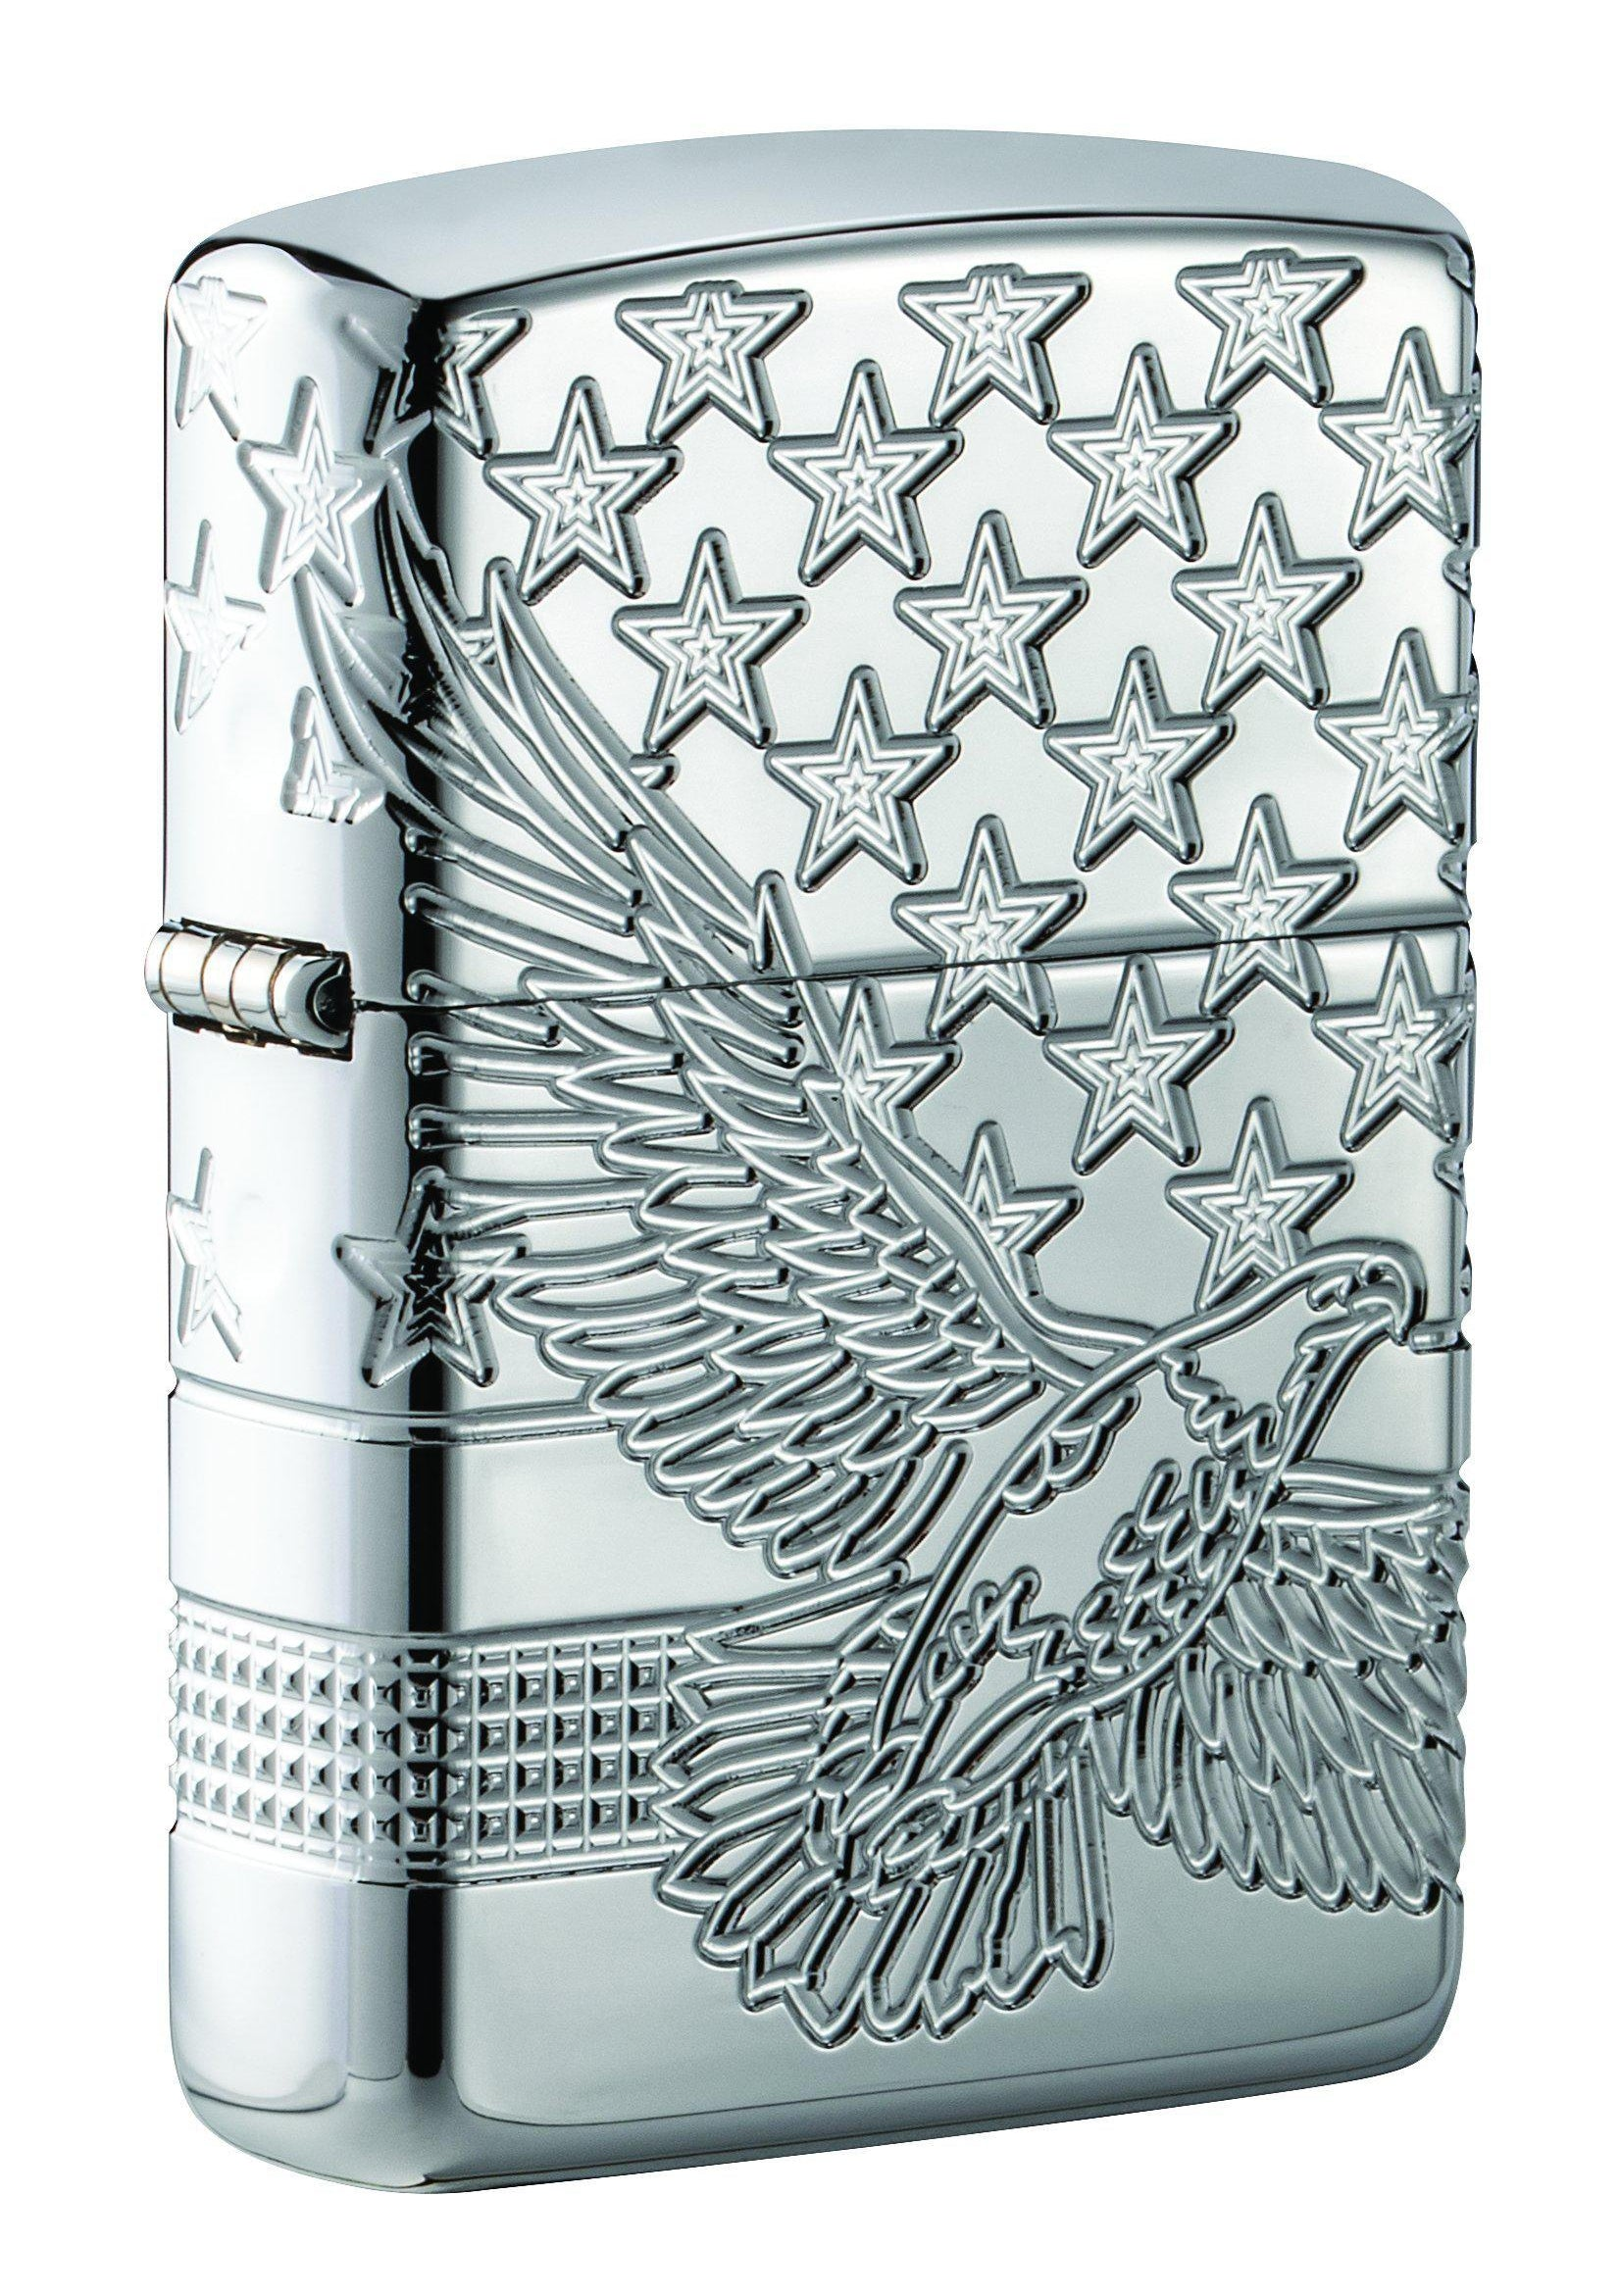 Zippo Lighter: Armor MultiCut Patriotic Eagle - High Polish Chrome 49027